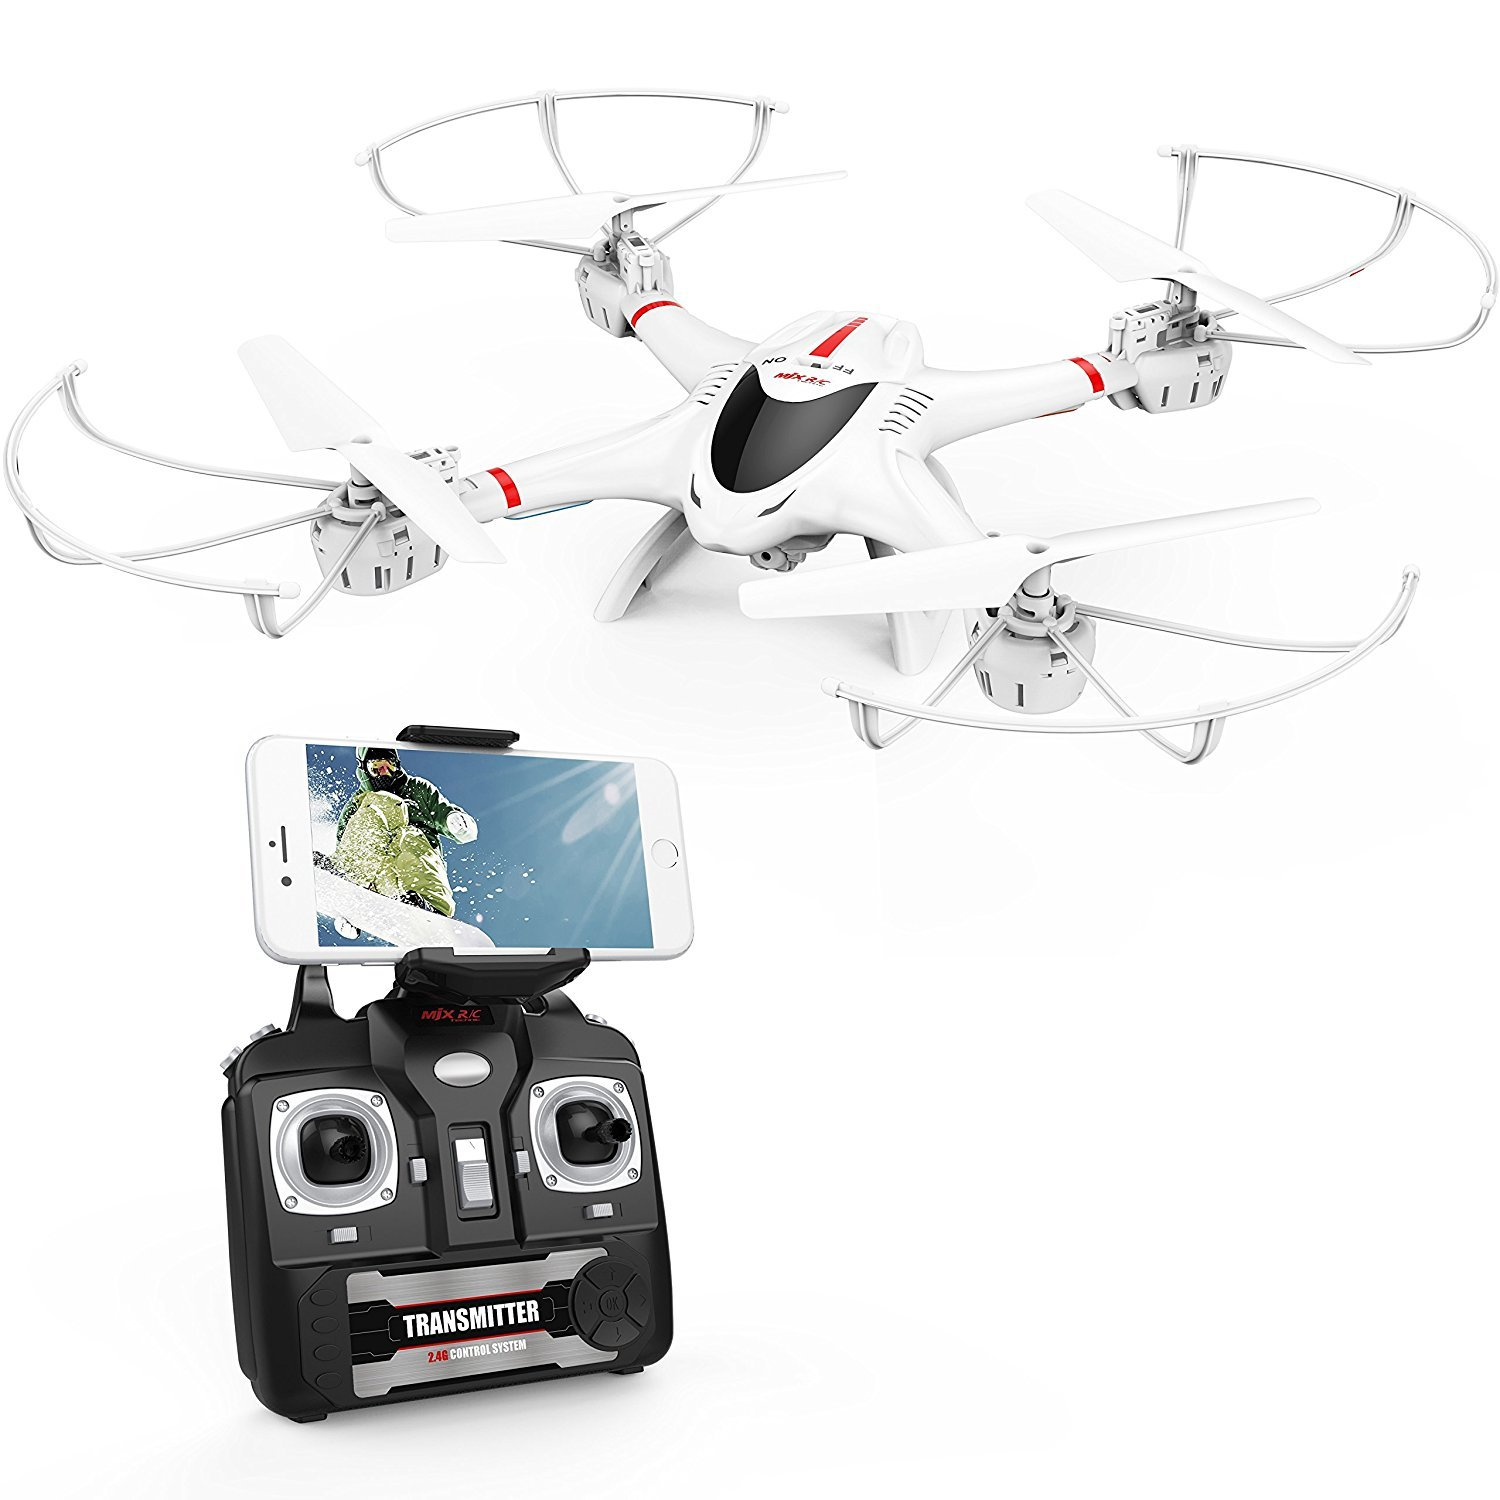 Reasons to choice RC Quadcopters rather than RC Helicopters as a gift